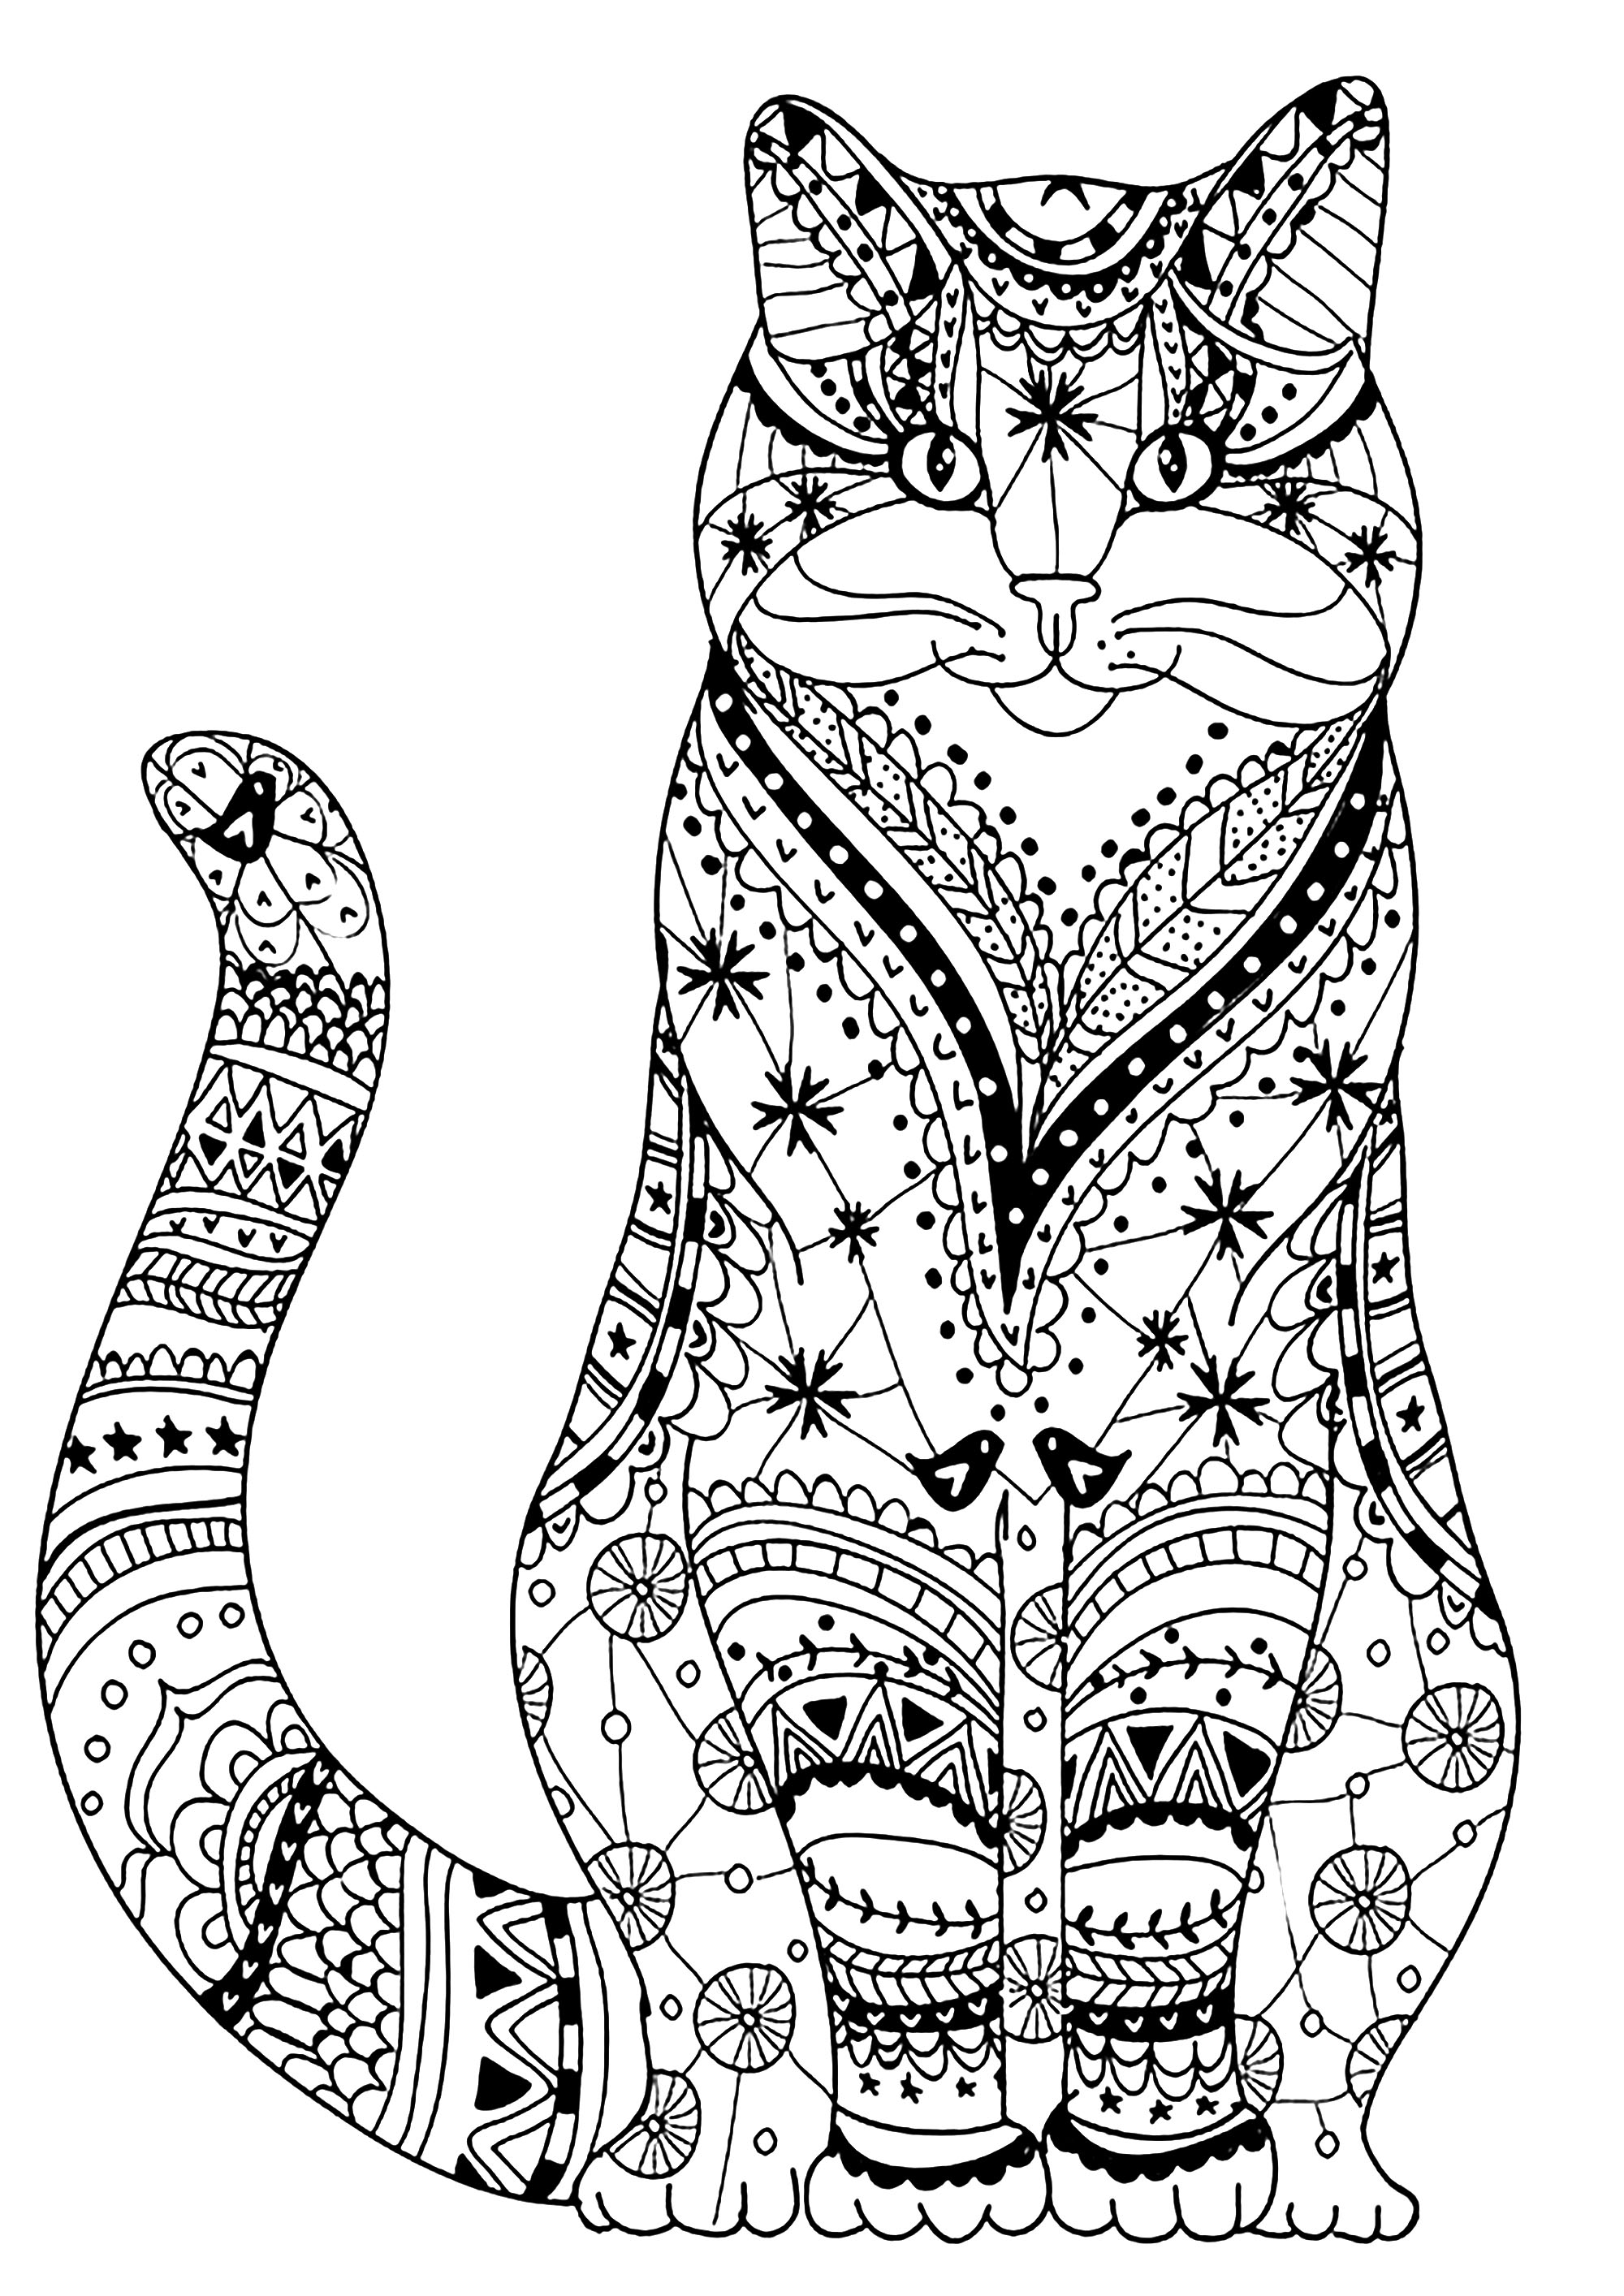 colouring pages cats very wise cat cats adult coloring pages cats pages colouring